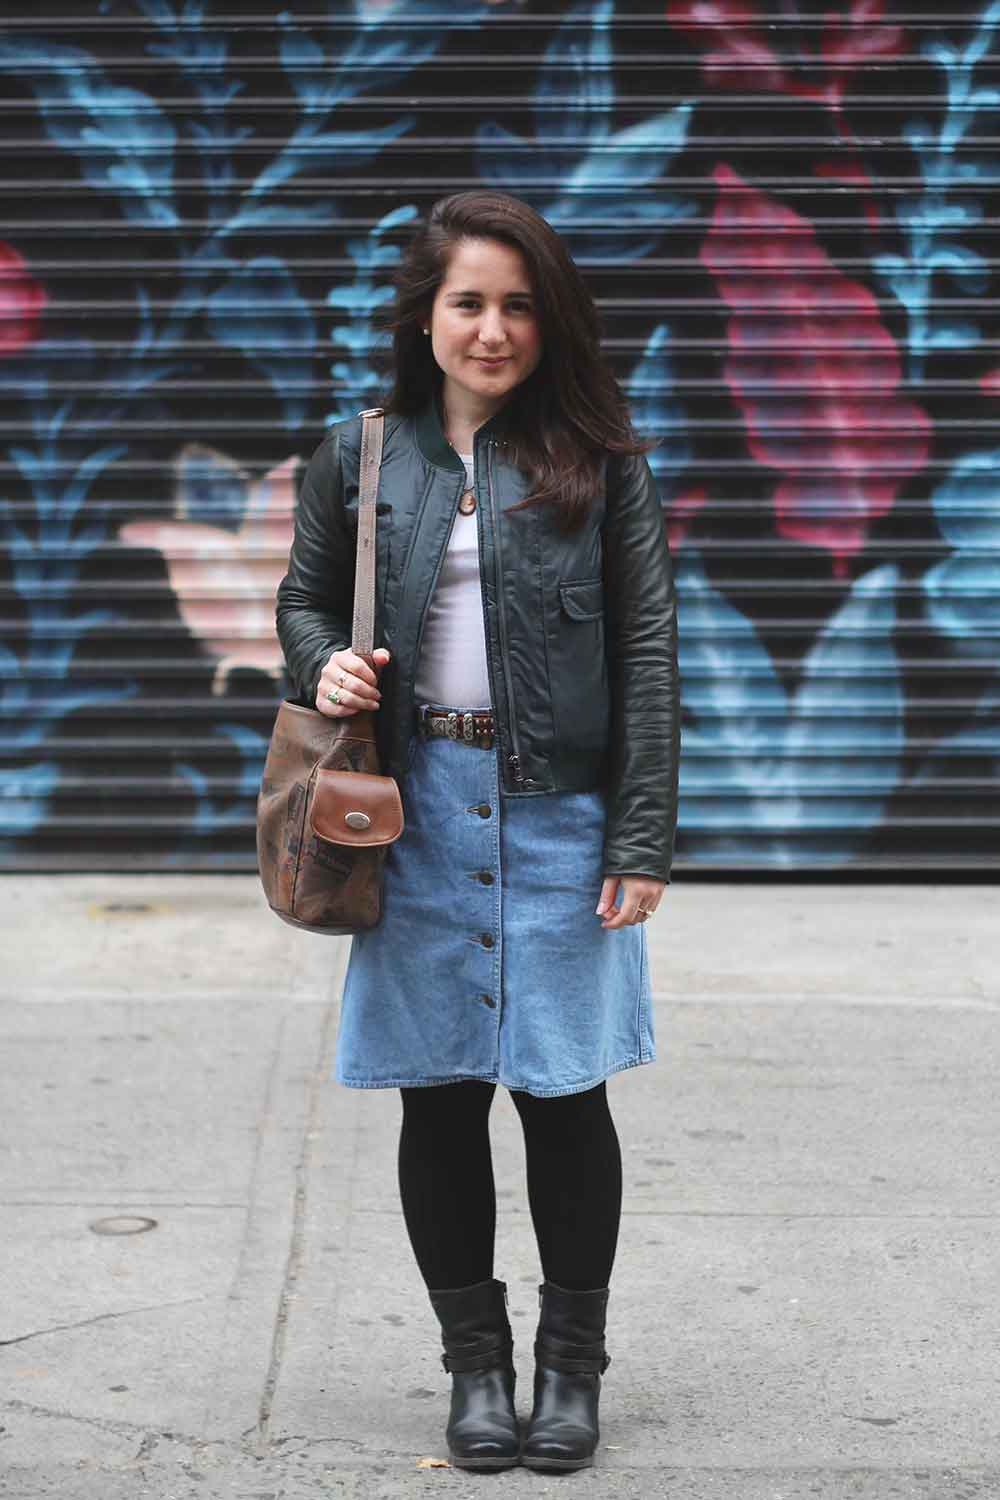 Leather Jacket:  Tory Burch  // White T-Shirt:  Forever 21  // Denim Skirt: Mom's Closet // Belt + Bag: Vintage // Boots:  PIKOLINOS